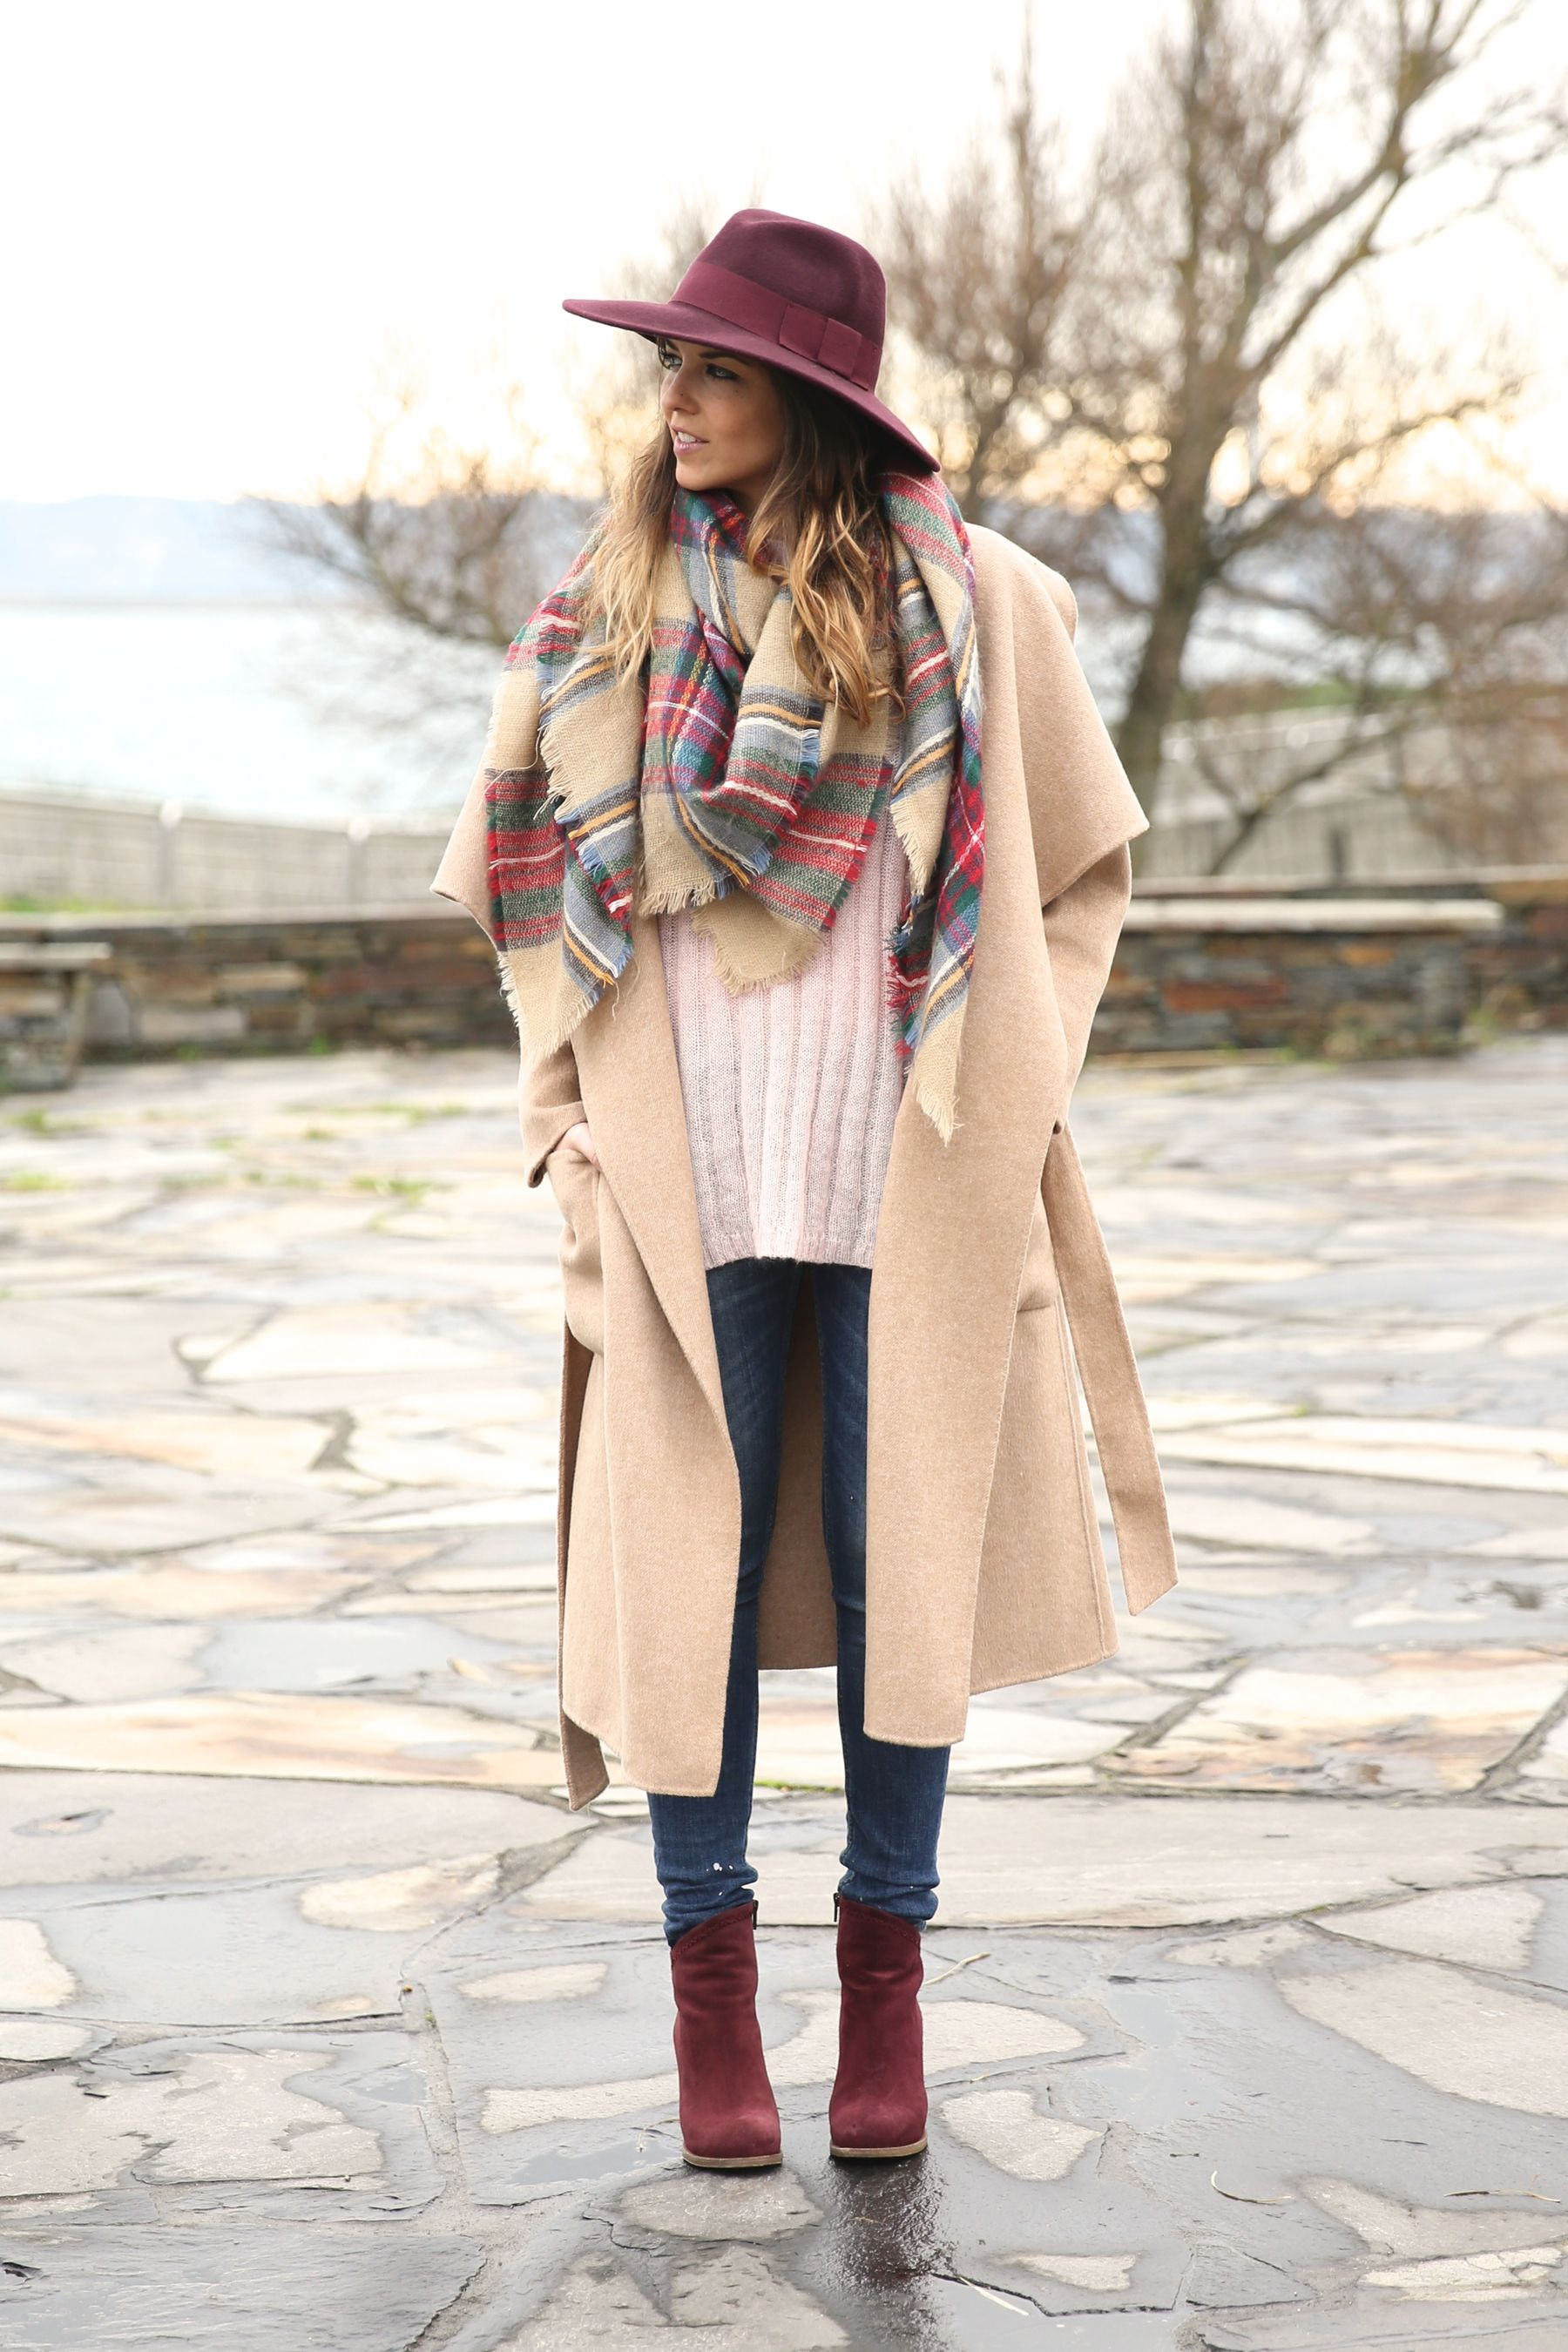 Oversized Coat Trend: Natalia Cabezas is wearing an oversized beige coat from Zara